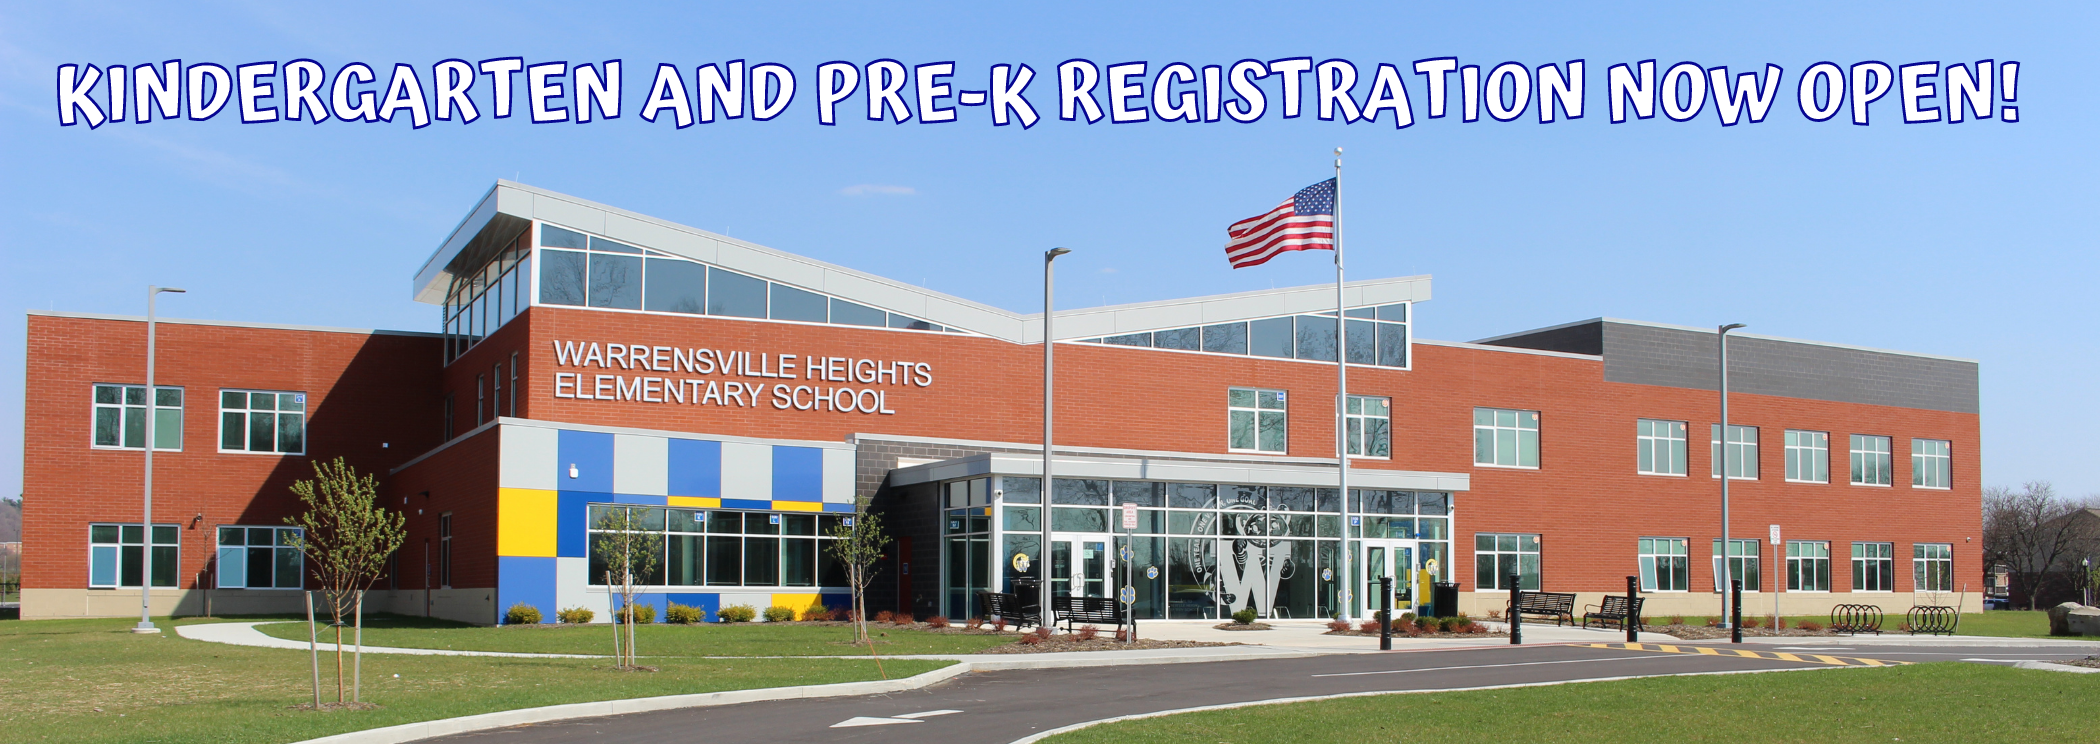 Kindergarten and Pre-K registration now open